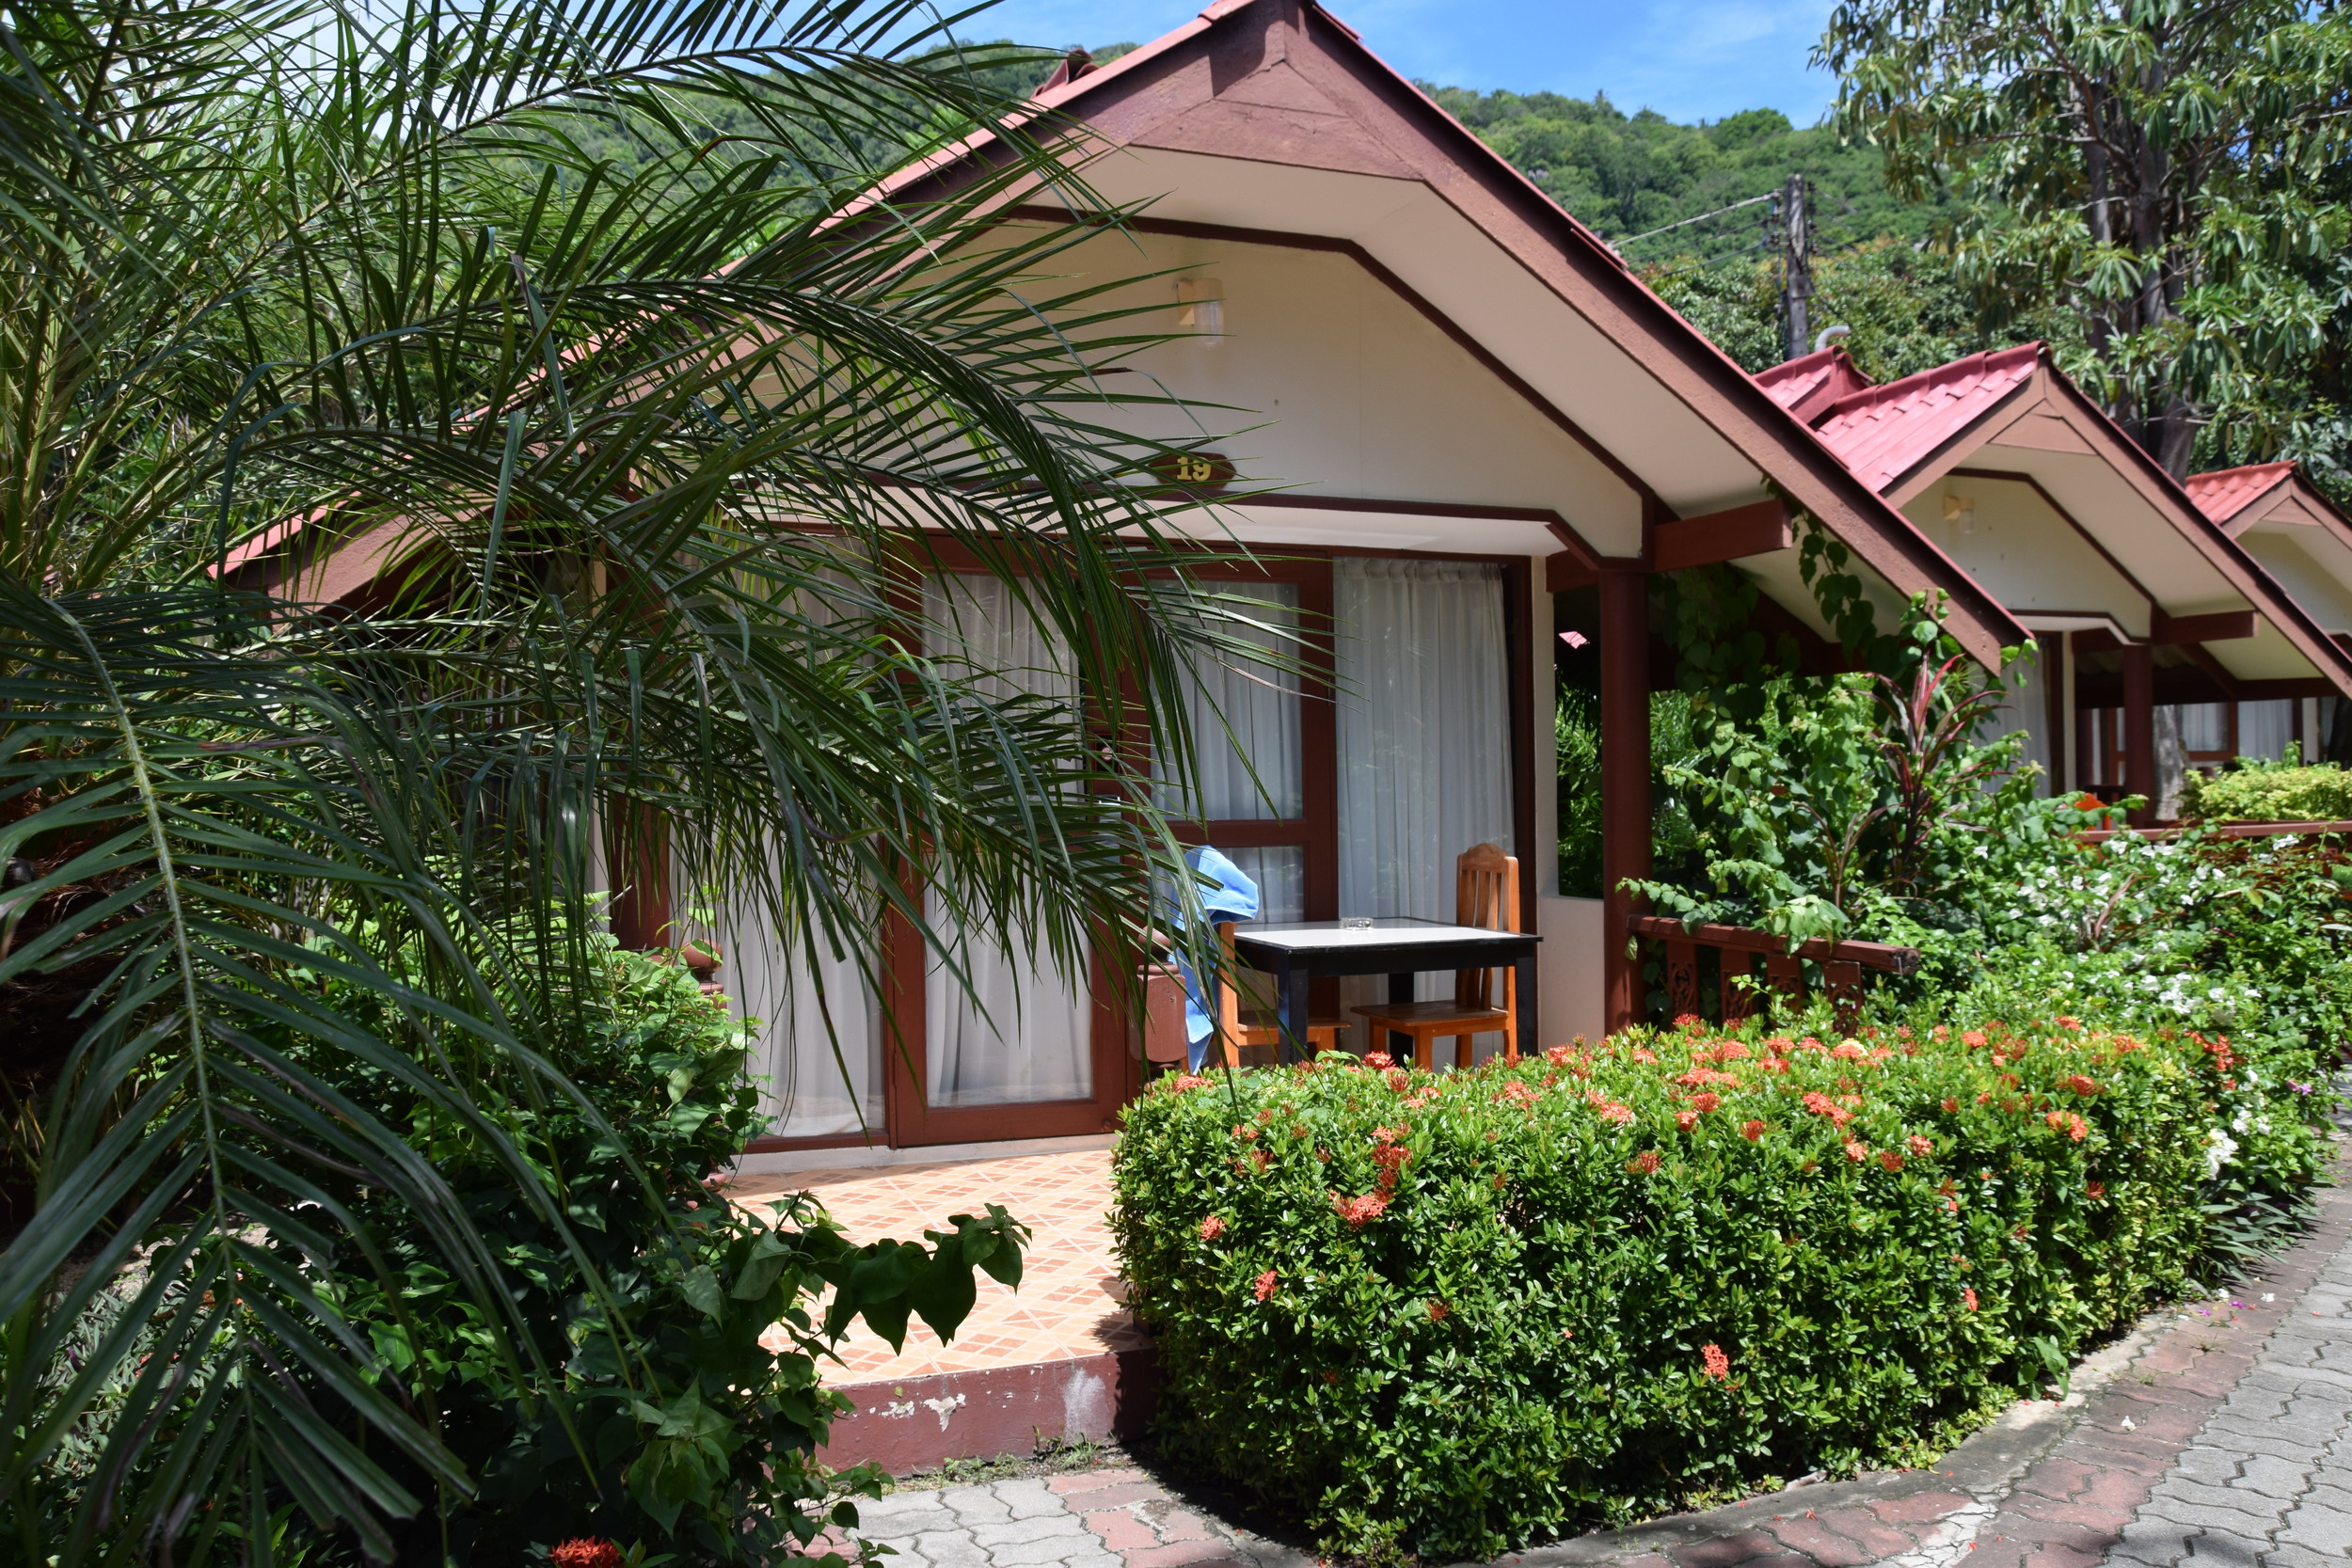 Remote Year accommodations In koh phangan, Thailand